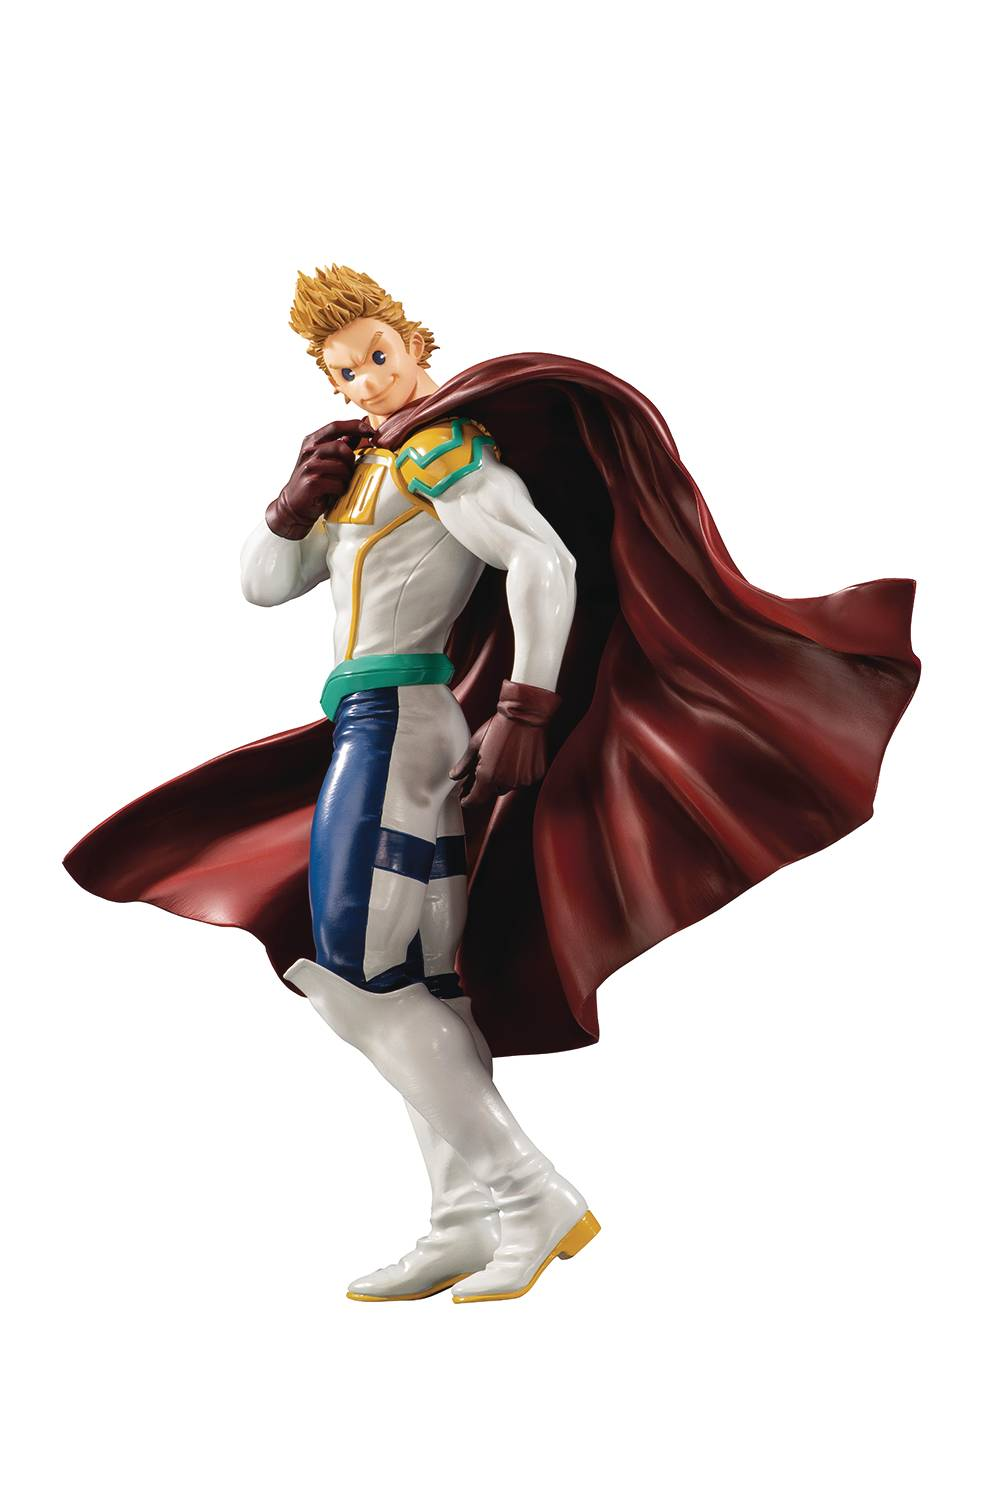 MY HERO ACADEMIA NEXT GEN MIRIO TOGATA ICHIBAN FIG (NET) (C: